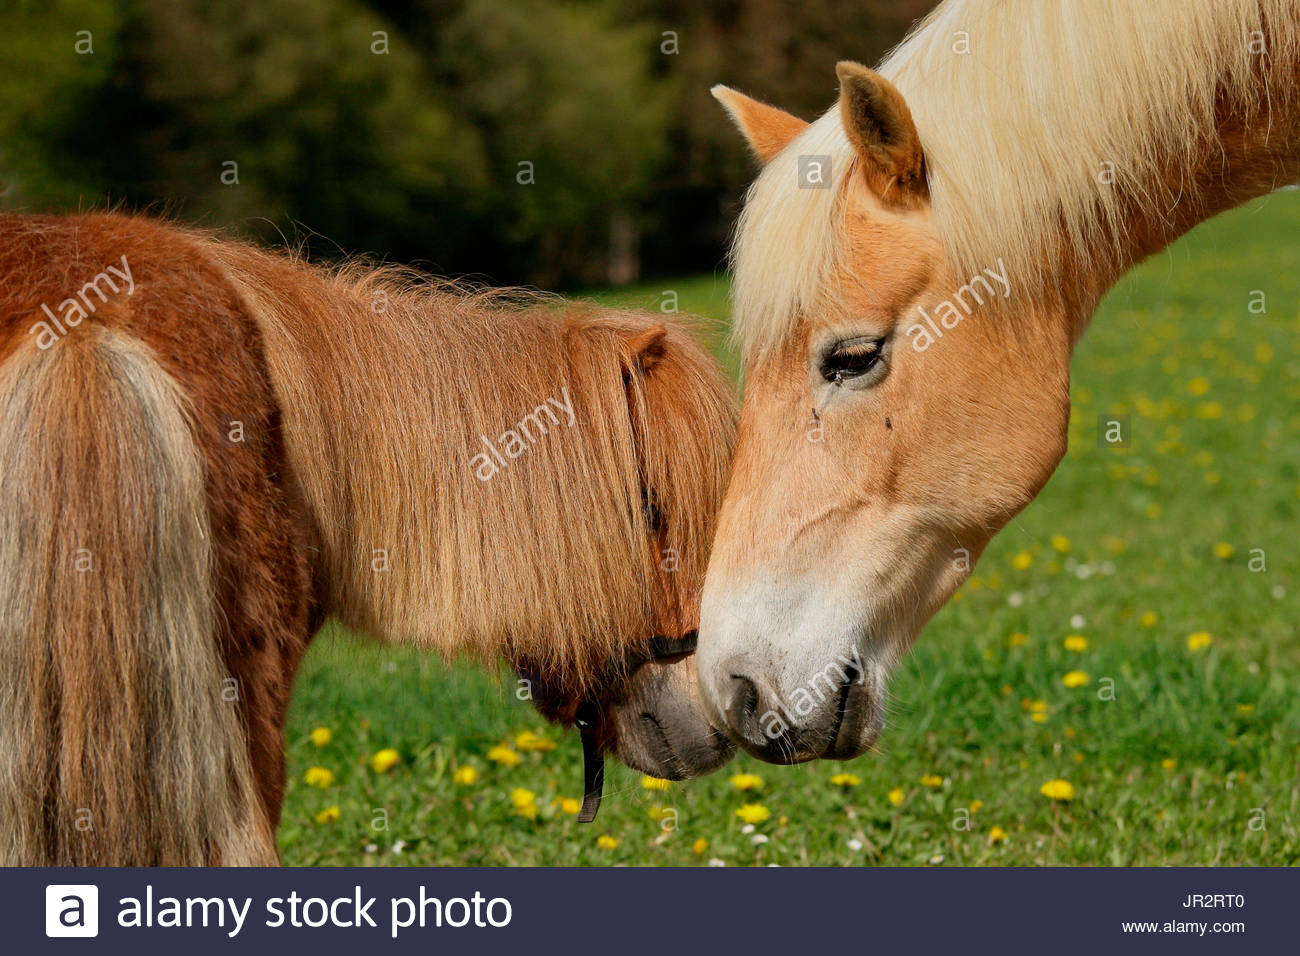 Shetland pony and Haflinger poney in the meadow - Stock Image